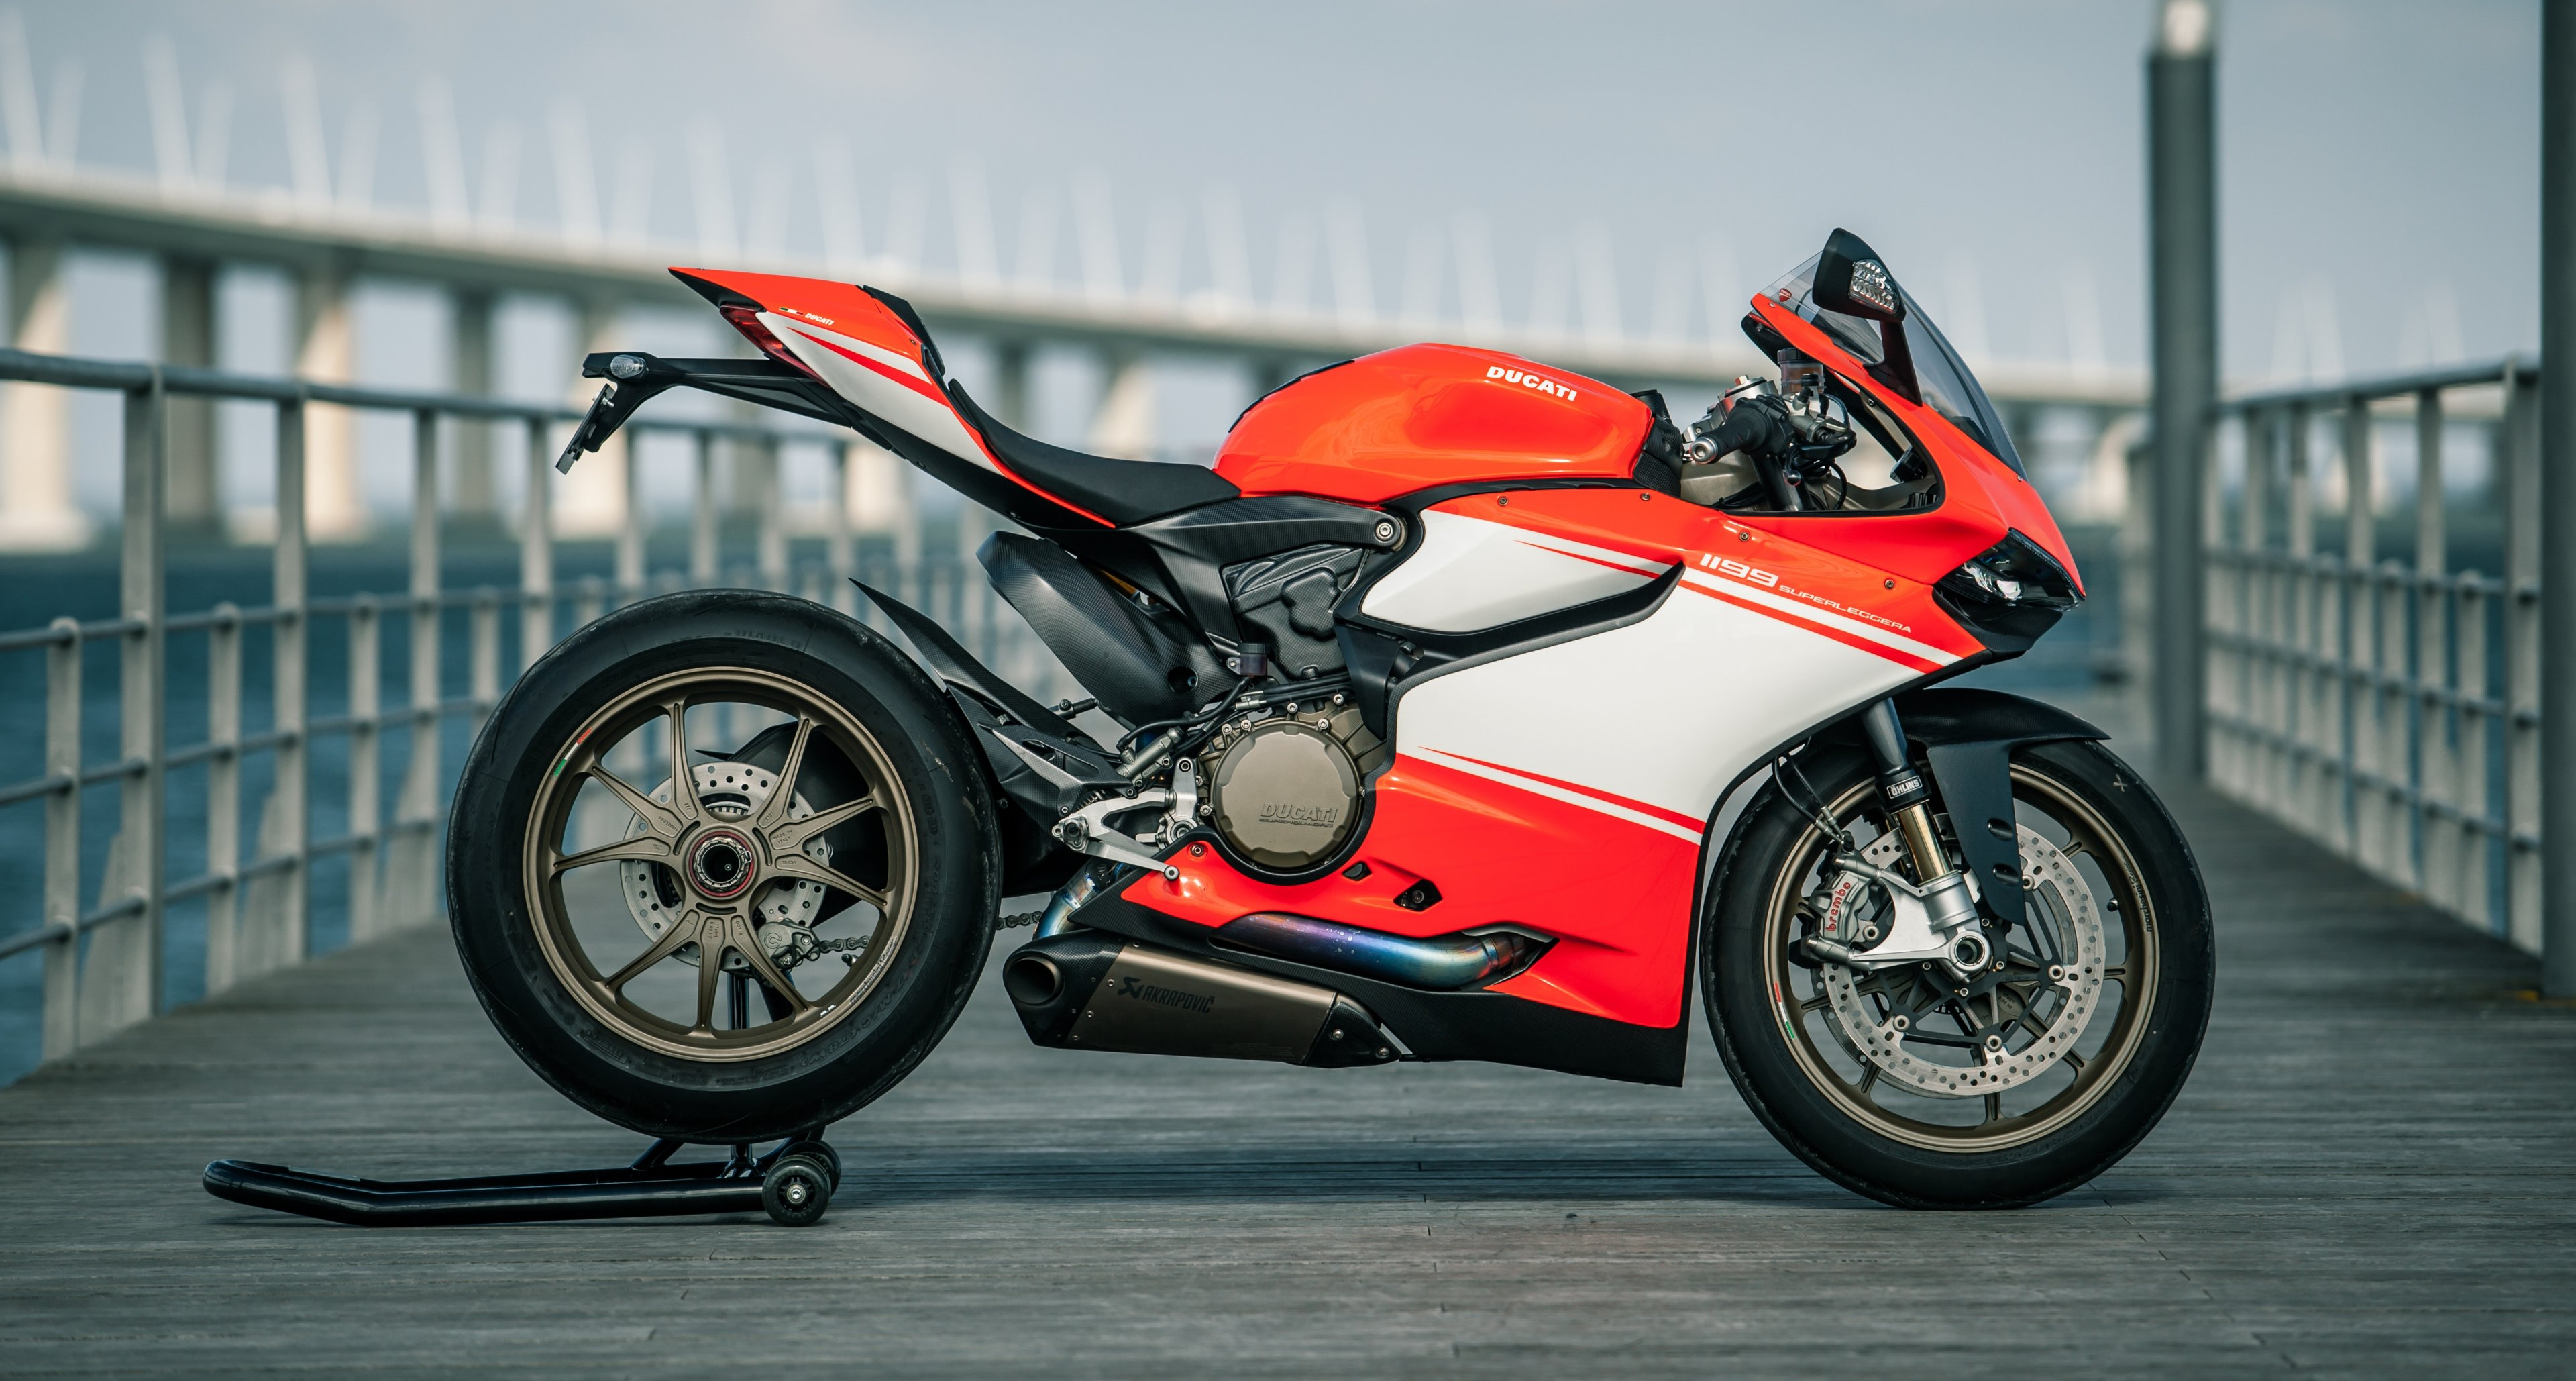 2014 Ducati Other - 1199 Superleggera